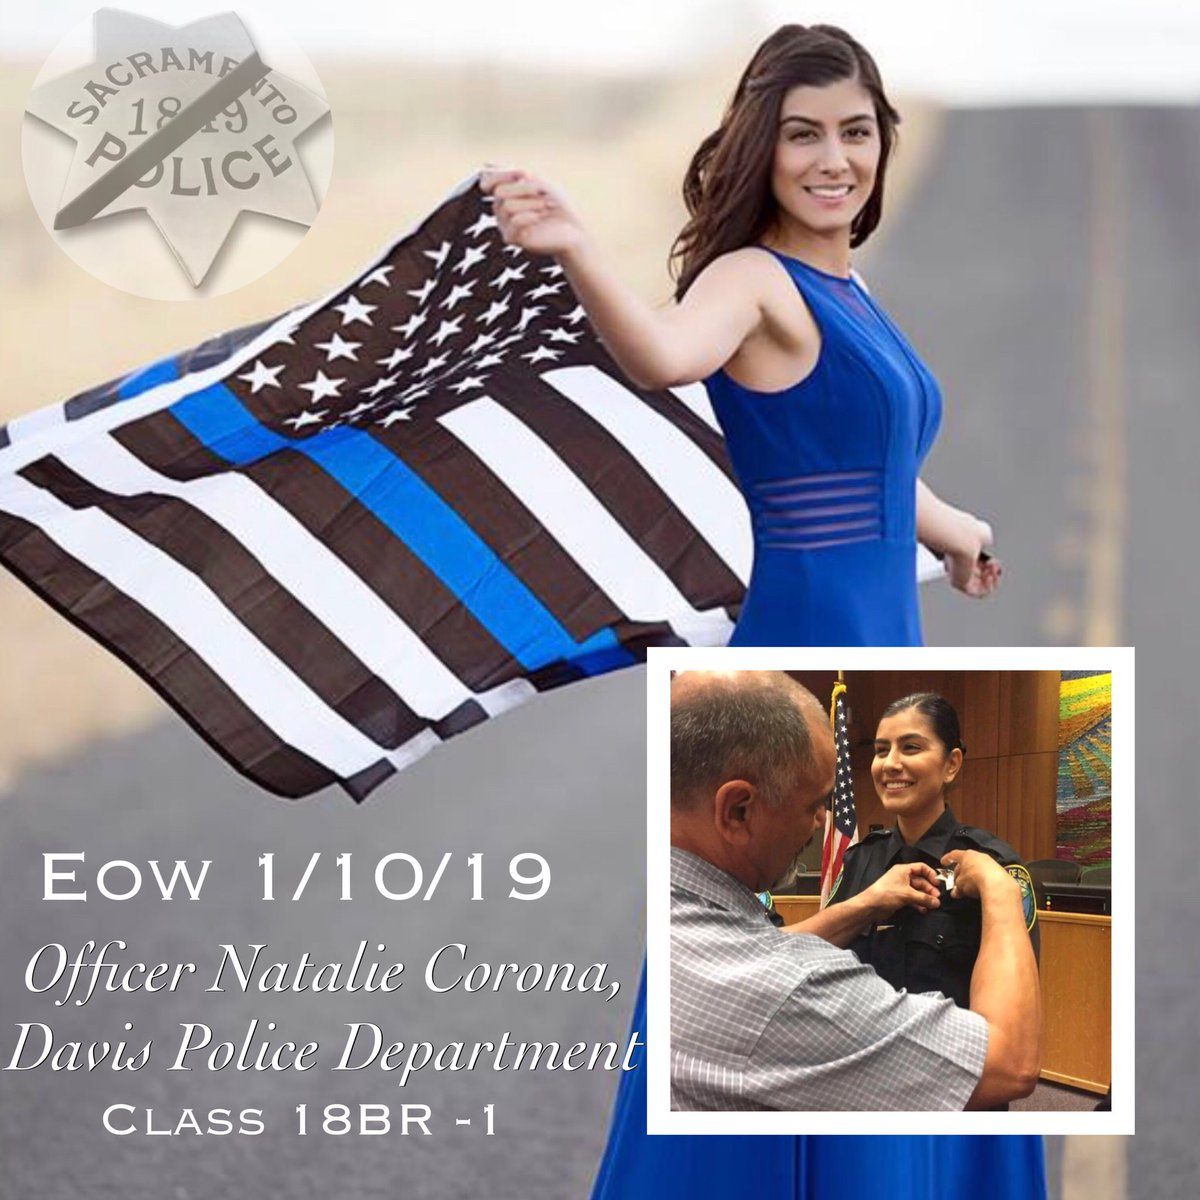 Officer Natalie Corona of @cityofdavispd your life mattered. We stand with your family, @cityofdavispd, the Davis community &amp; SPD Academy Class #18BR1 and ours s are broken. You are a hero Natalie - and we will never forget you #inthelineofduty #sacpd #officercorona <br>http://pic.twitter.com/QbwFHhJ5Mp